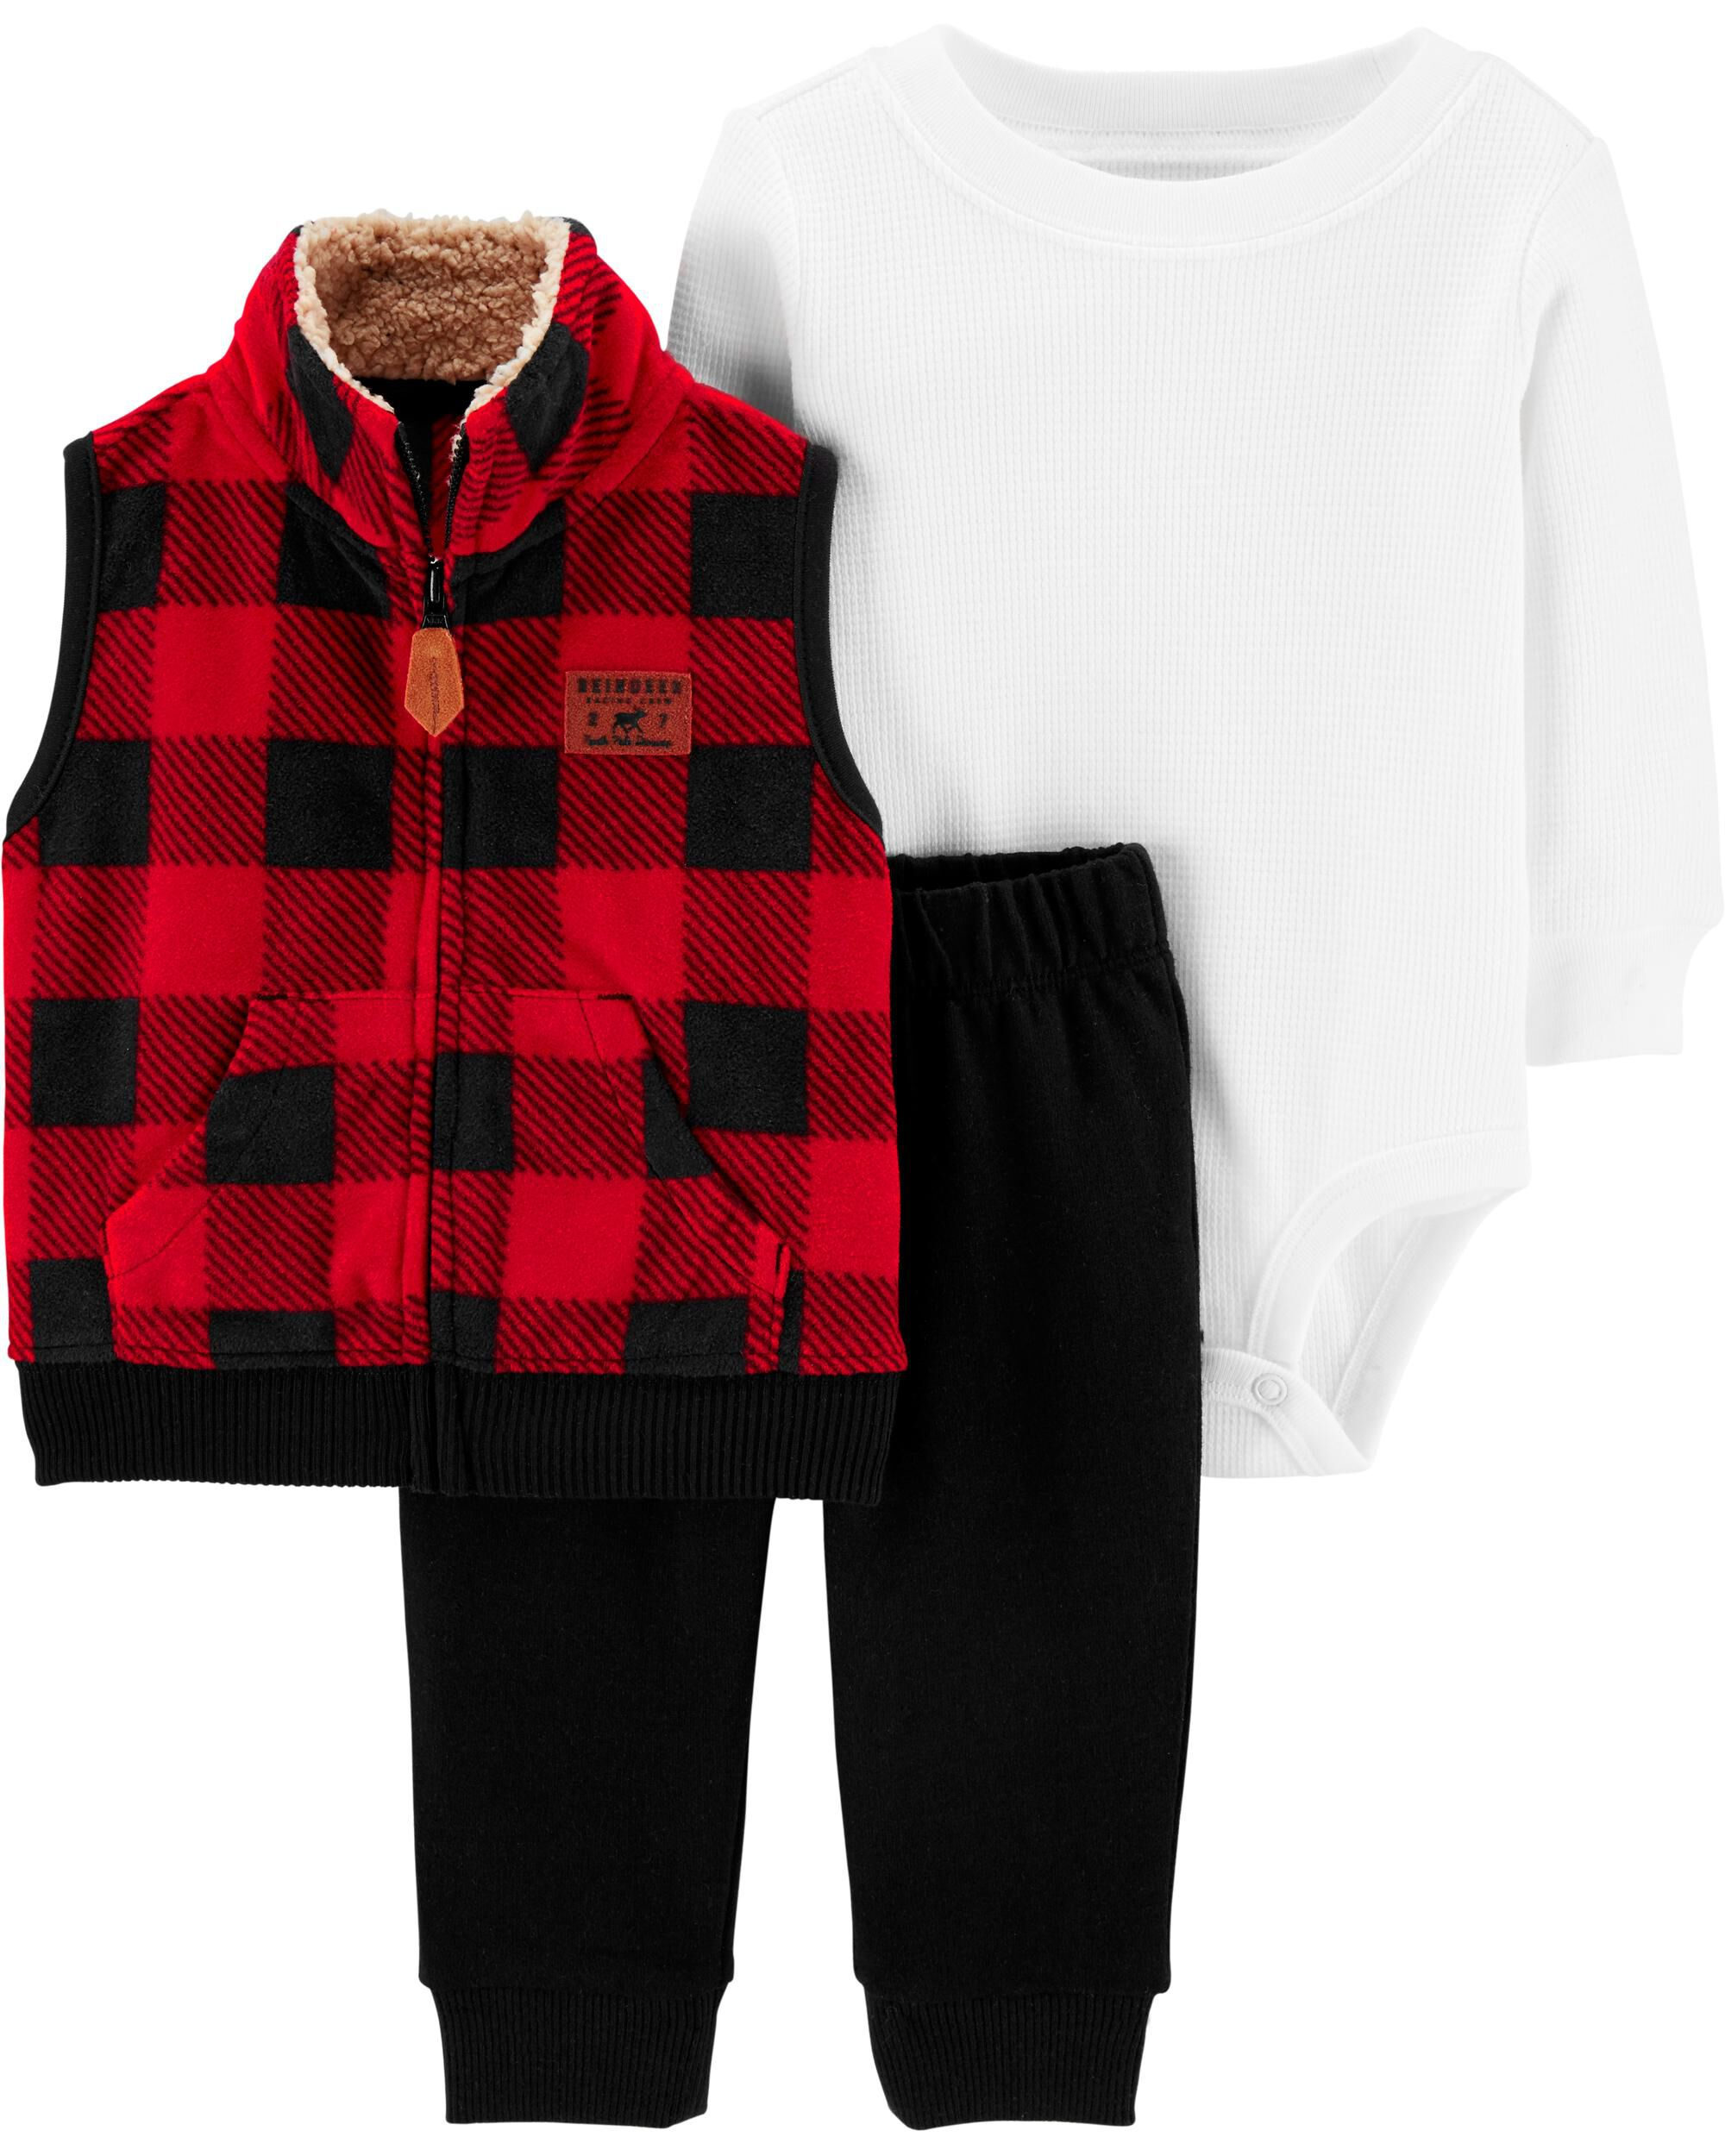 NB 6M 12M 2T Carter/'s Baby Girls/' 3 Piece Red Black Check Jumper Outfit Set